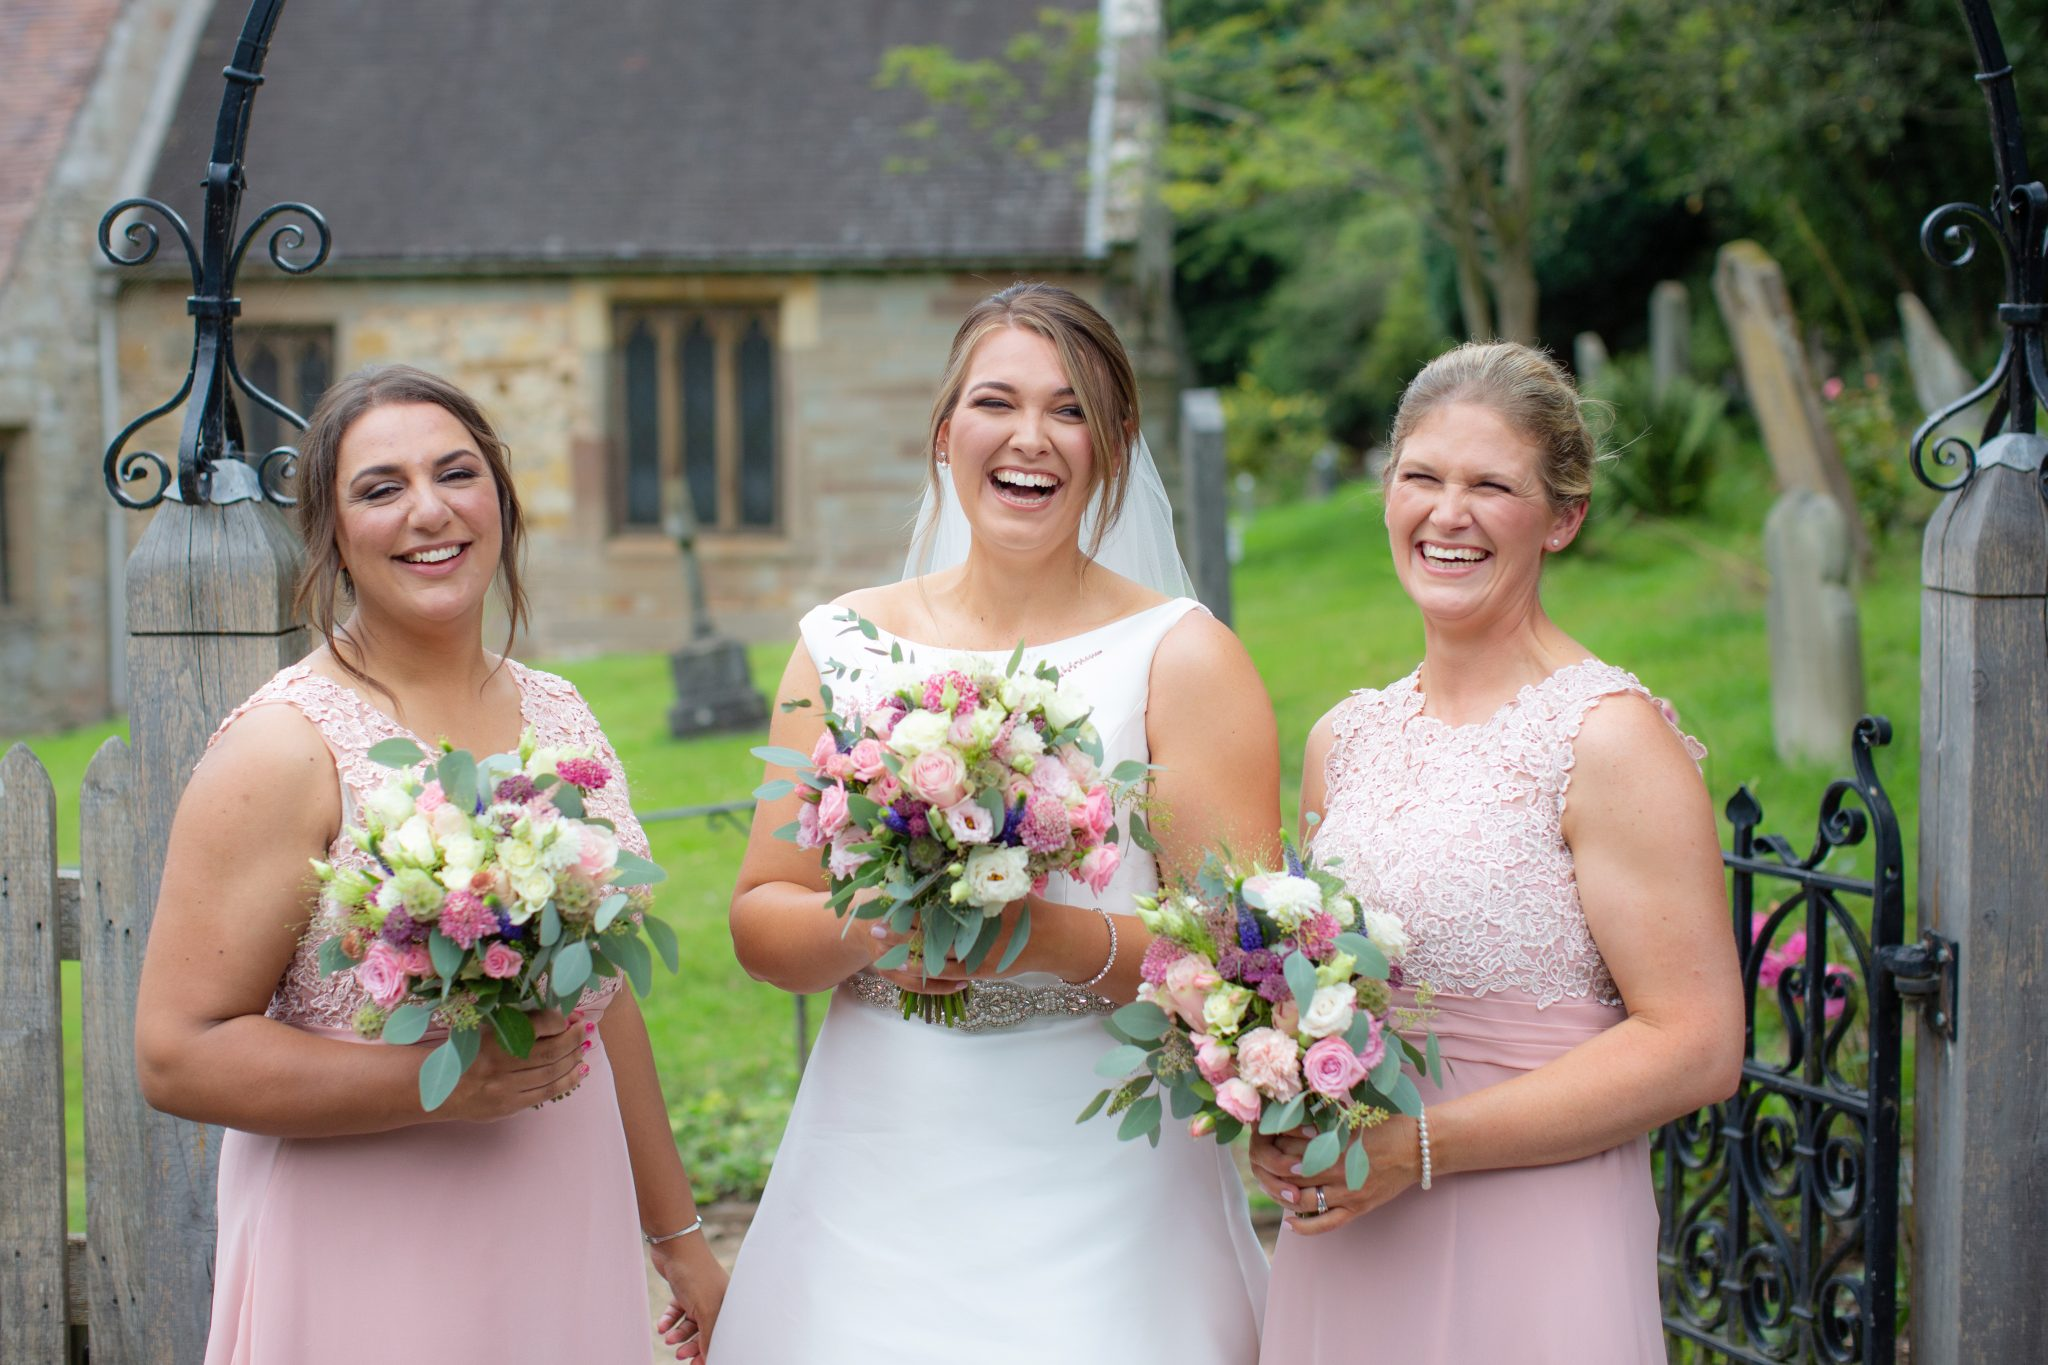 Bride and bridesmaids laughing.